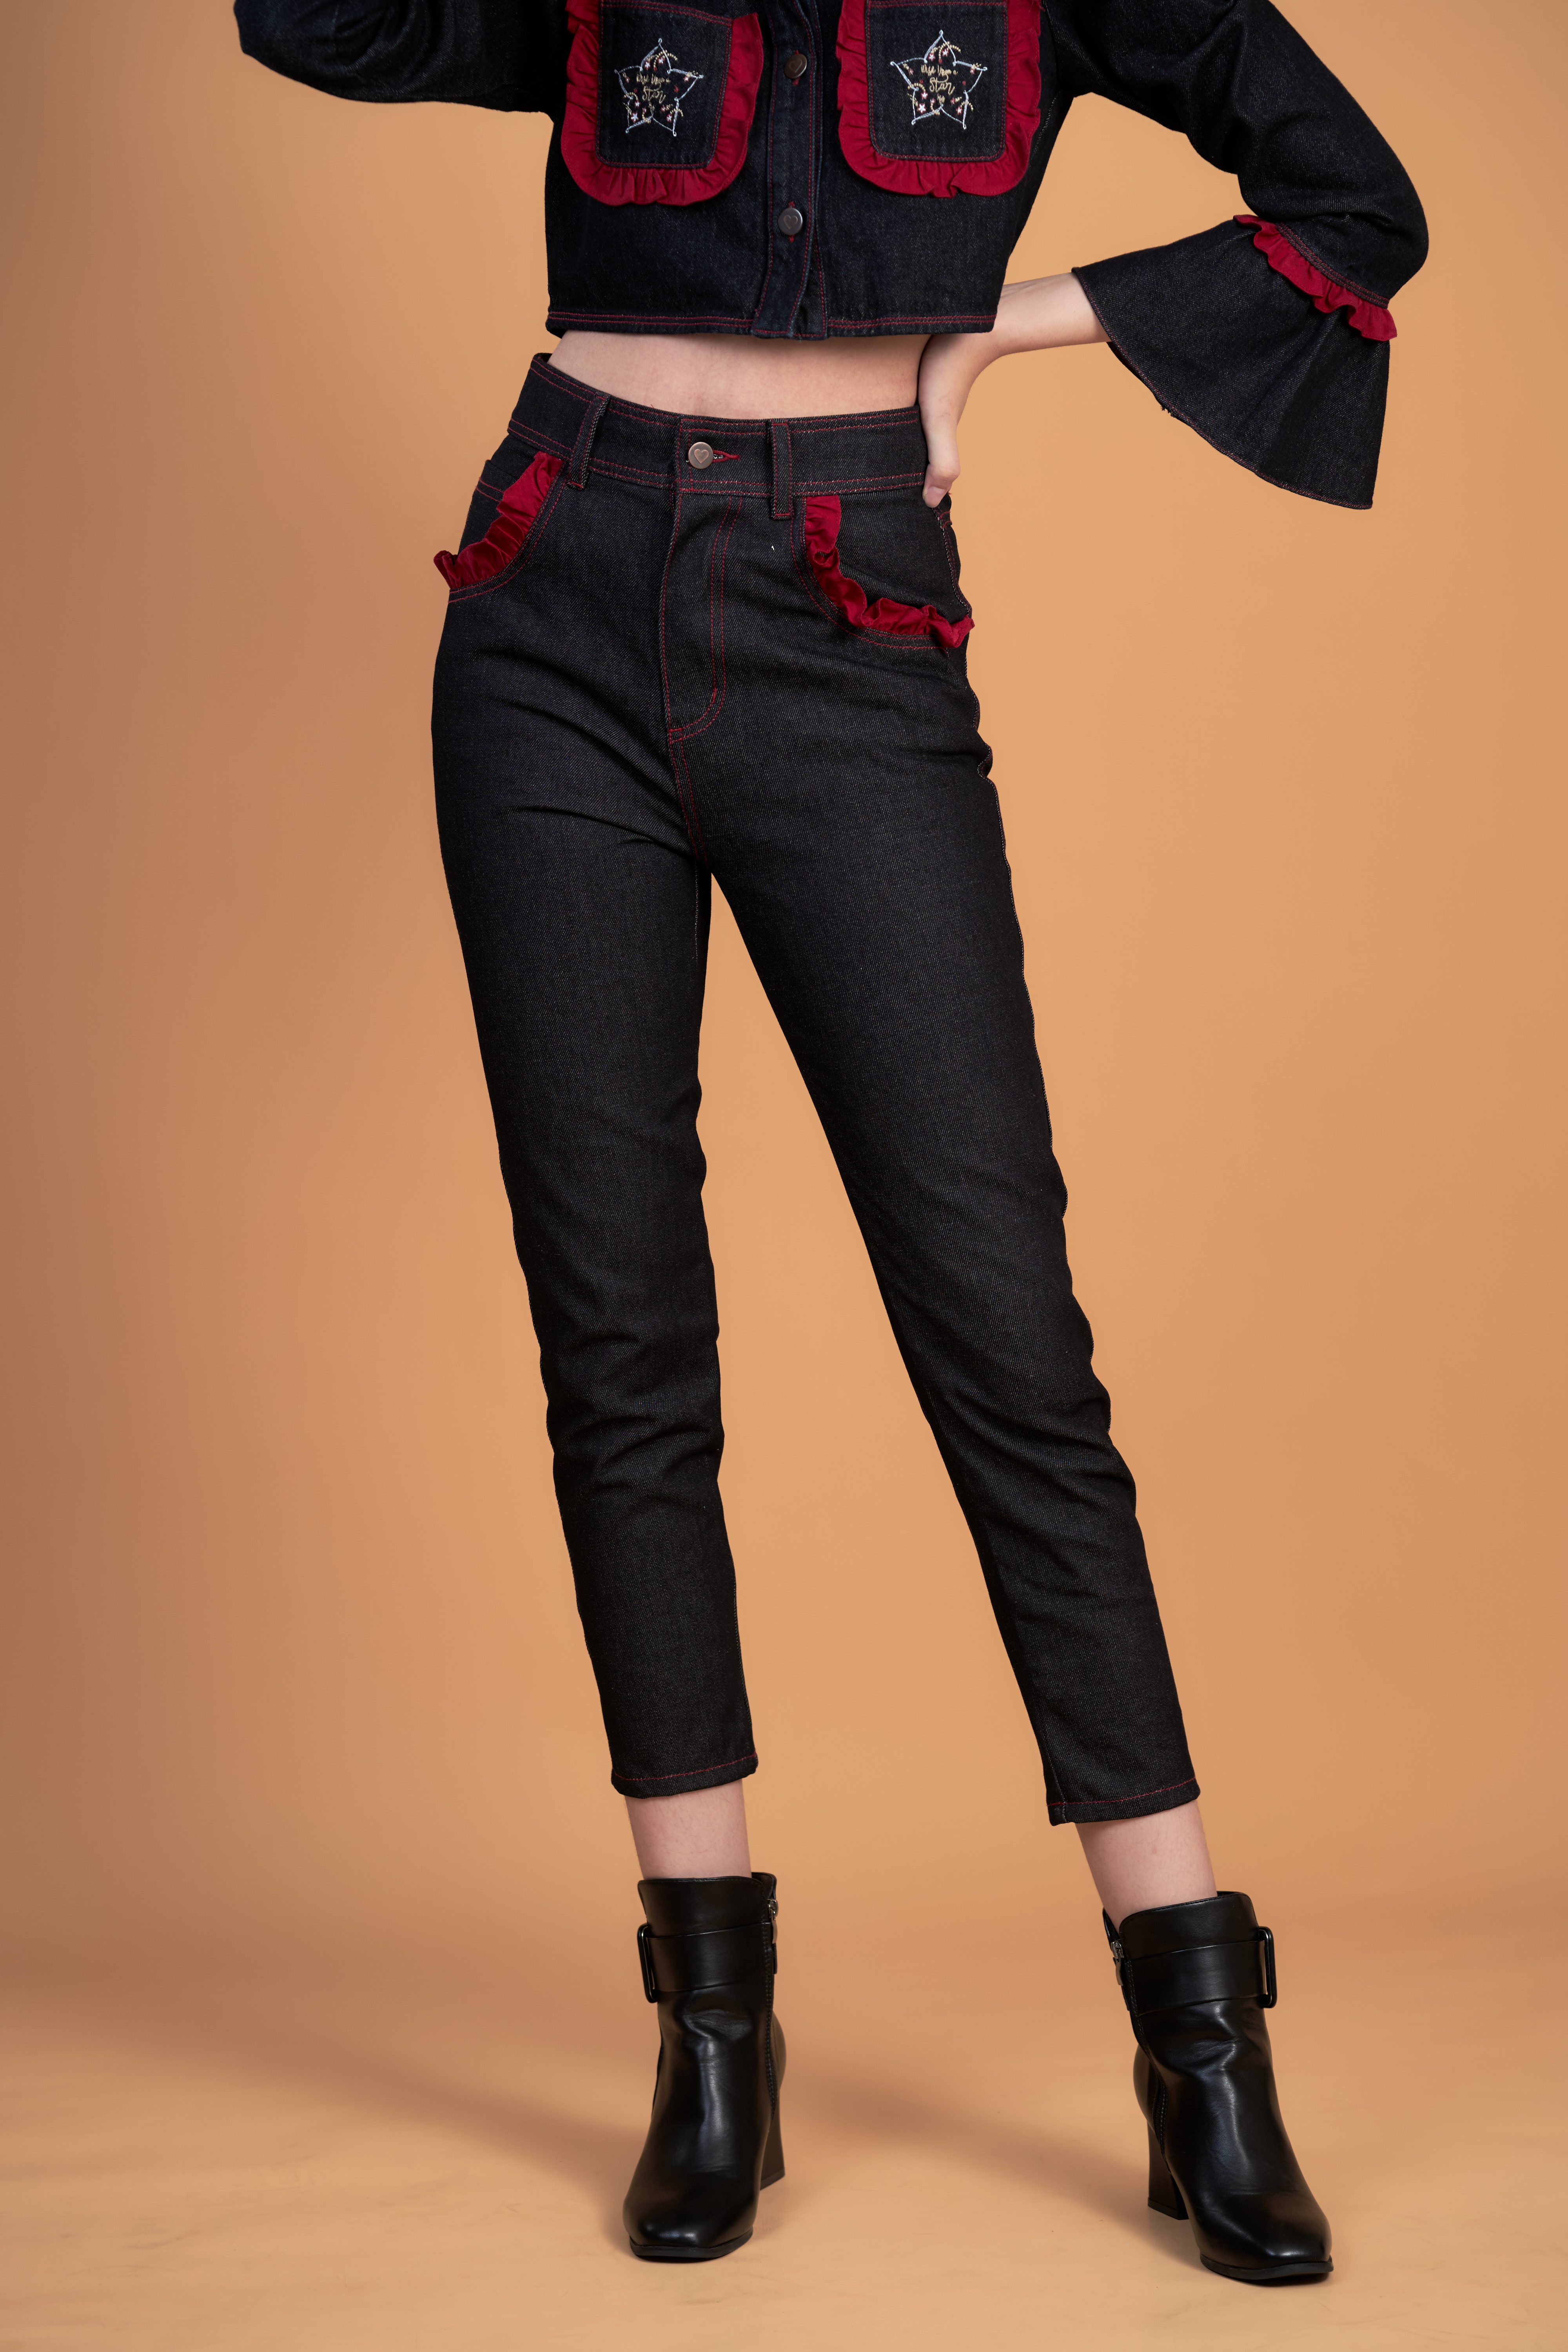 STR05 - WISH UPON A STAR DENIM EMBROIDERED PANTS - IN STOCK NOW